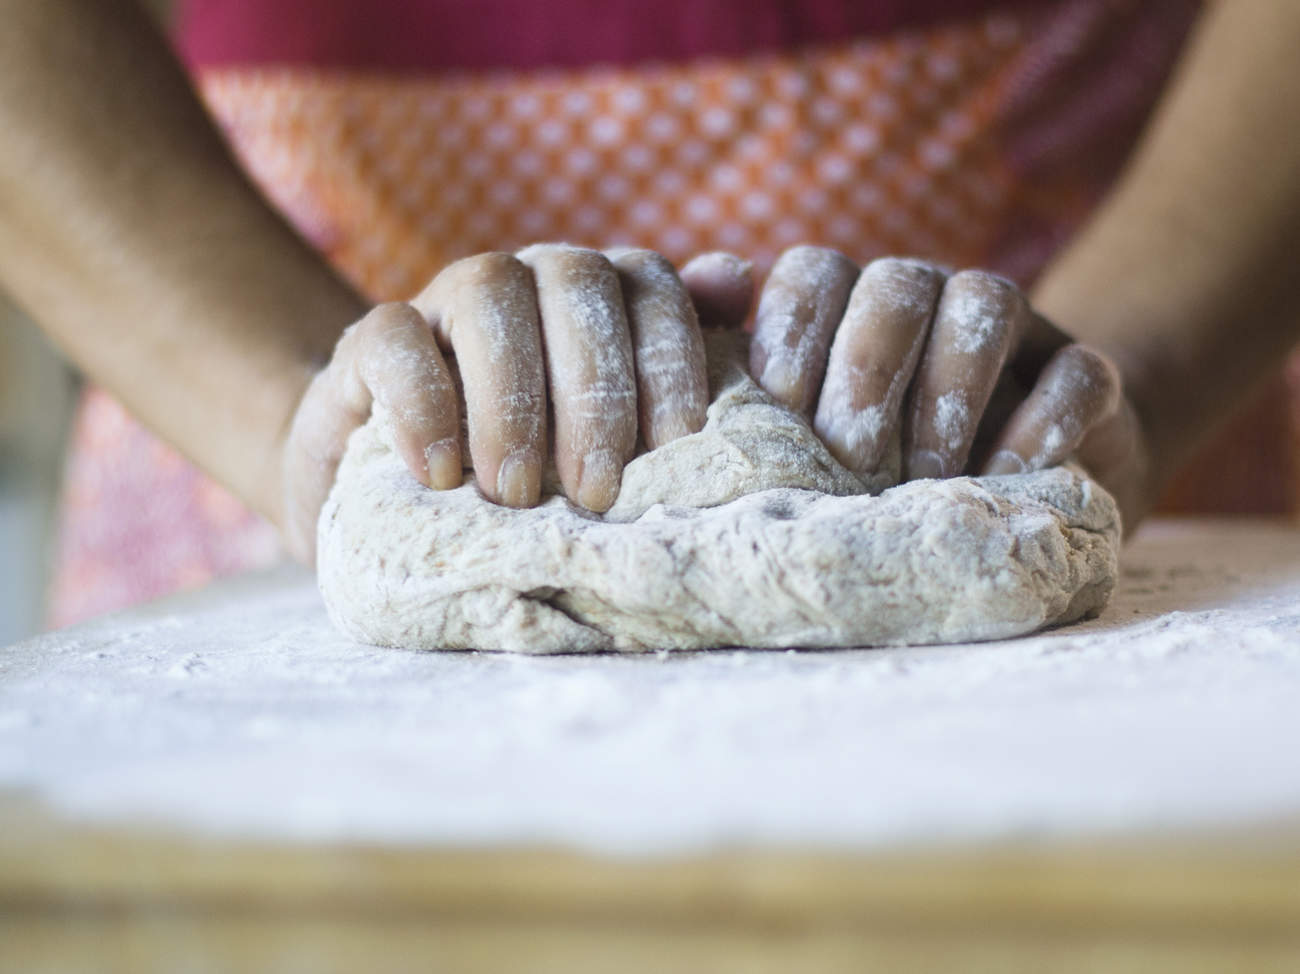 cooking-anxiety-dough-baking